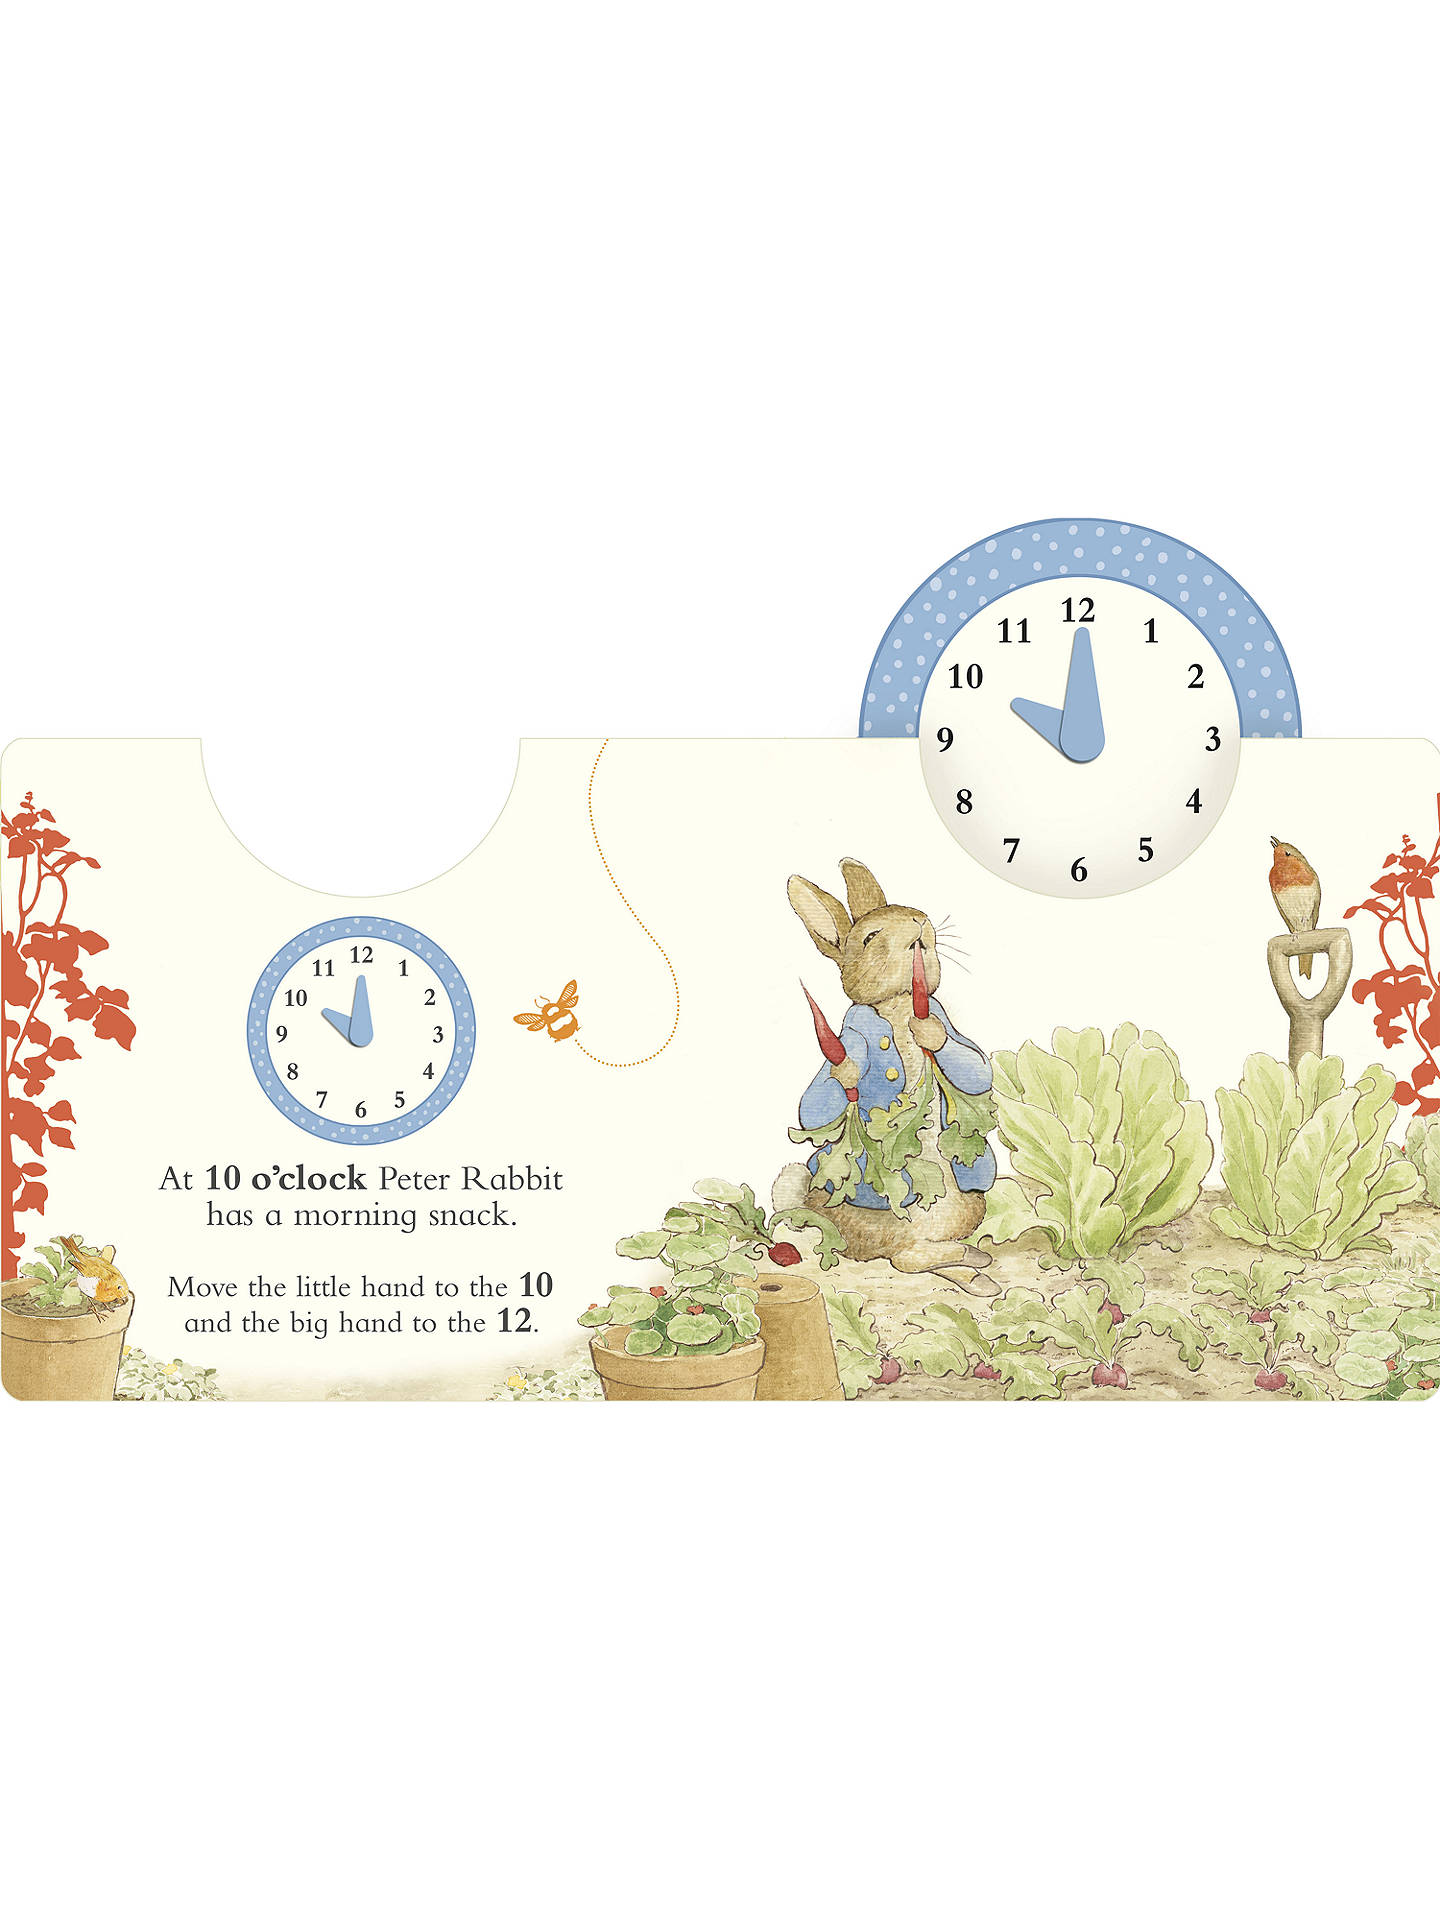 BuyBeatrix Potter Peter Rabbit What Time Is It Peter Rabbit? Children's Book Online at johnlewis.com